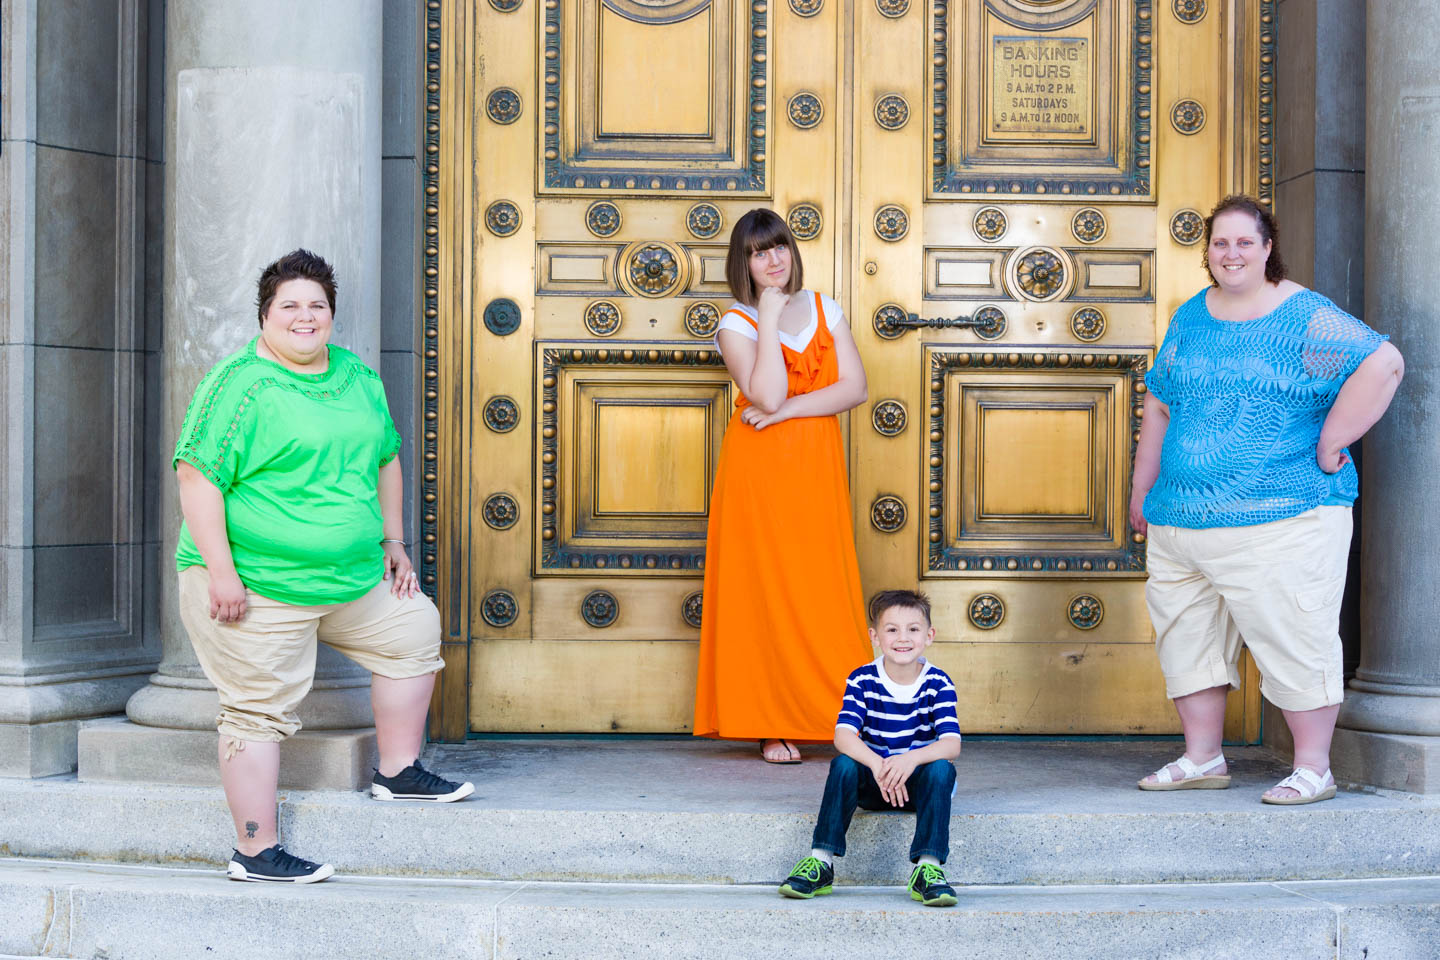 Family engagement photos by the Golden Doors in Exchange Place